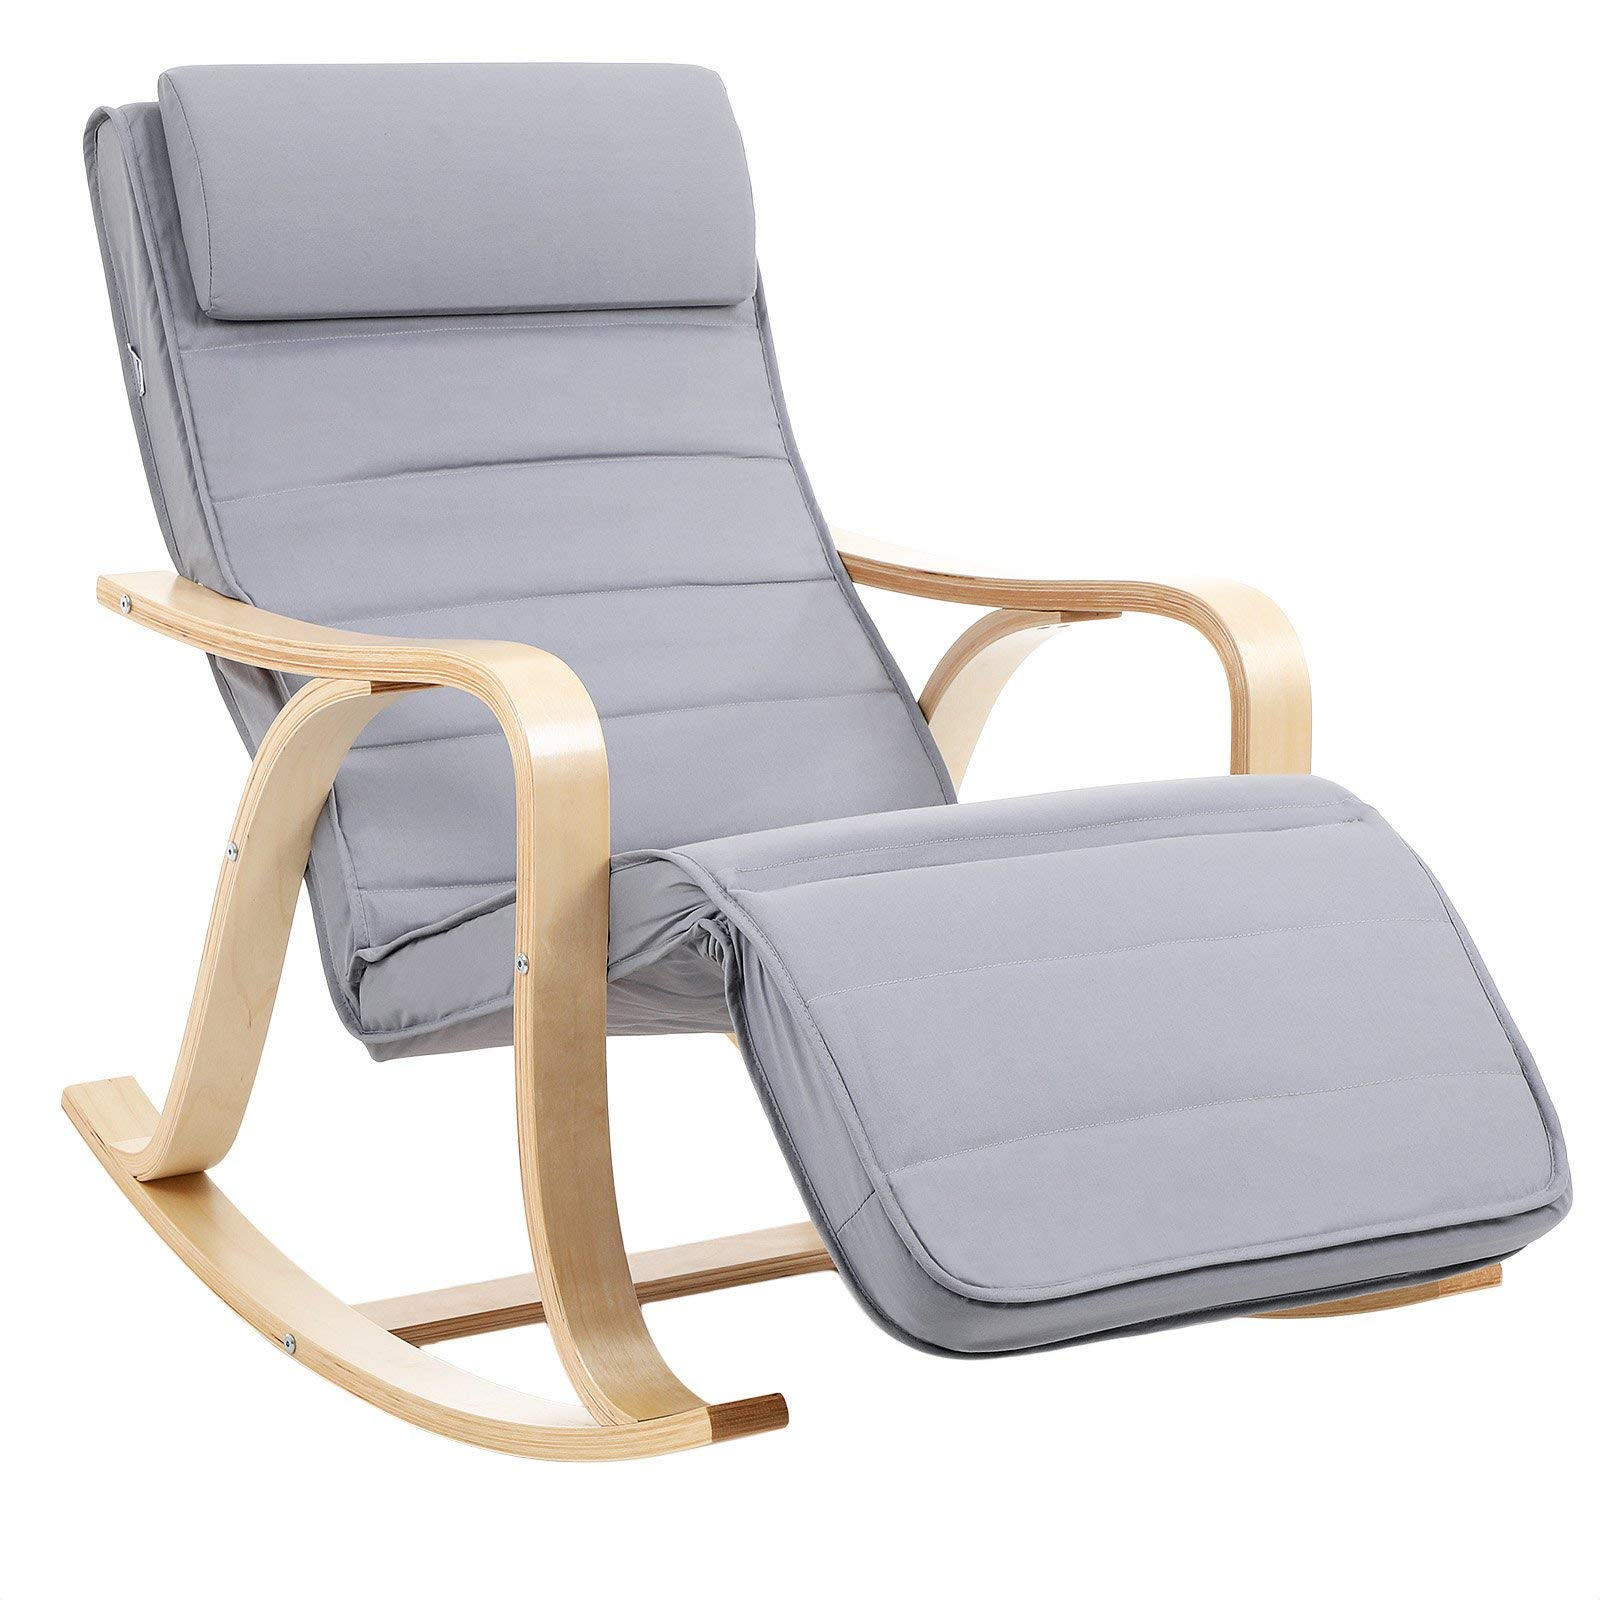 SONGMICS LYY41G Rocking Relaxing Chair with 5 Compartments Adjustable Calf Support Load 150 kg Grey, Wood, lightgrey, 67 x 125 x 91 cm